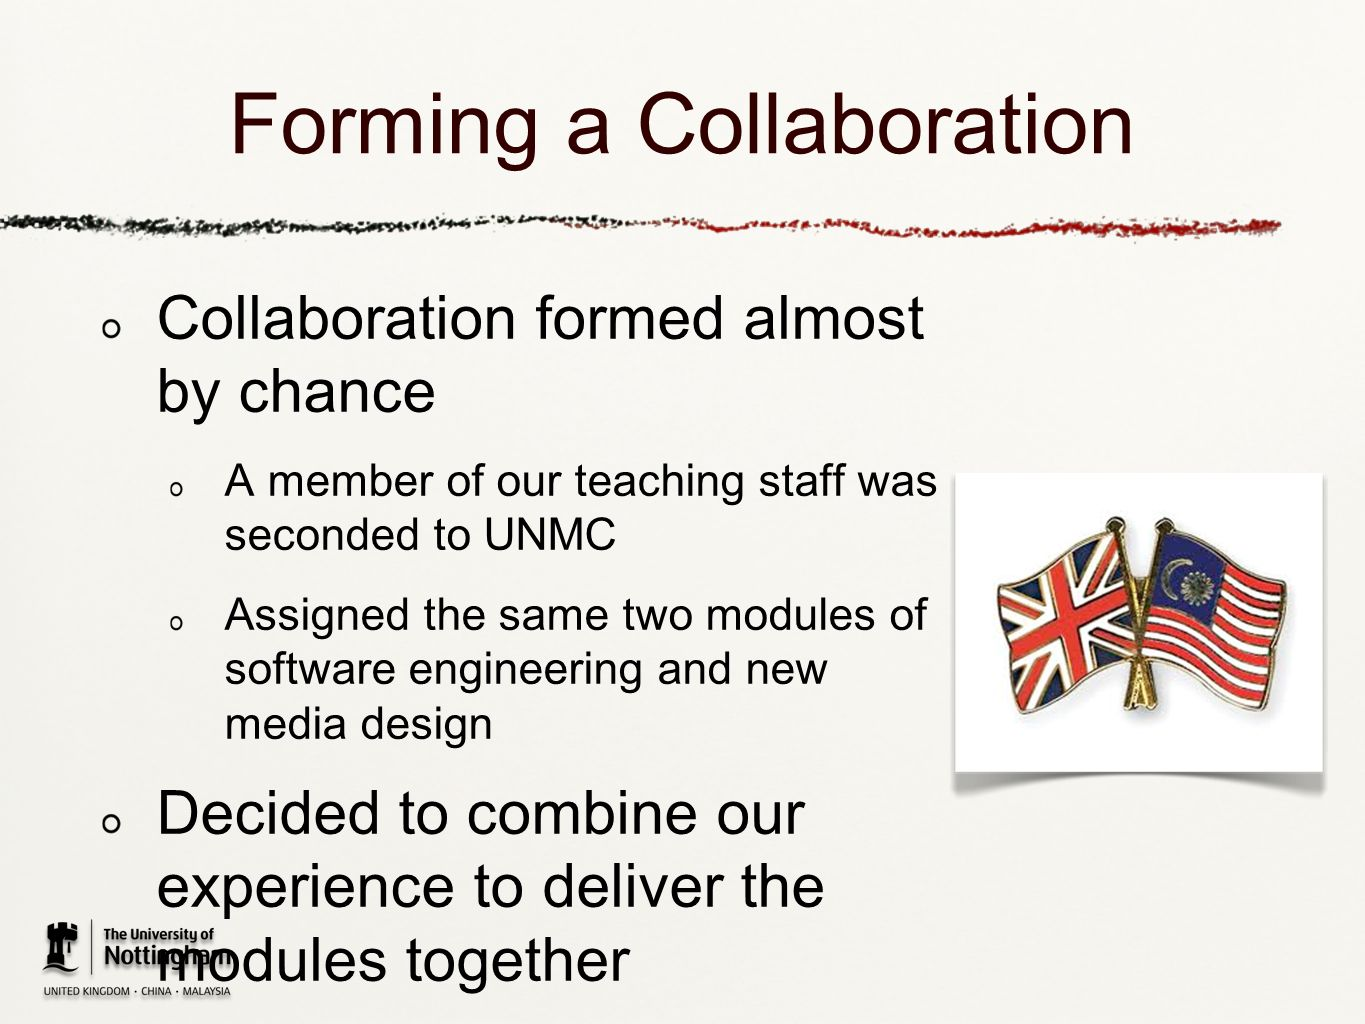 Top Tips Find a good collaborator who you know you can work with consistently Use online material as the basis of teaching Find a delivery mechanism that you feel you can cope with, allowing access to both cohorts there is tech support if you chose moodle Support online lectures with interactive workshops Be aware of timing differences and local cultural issues